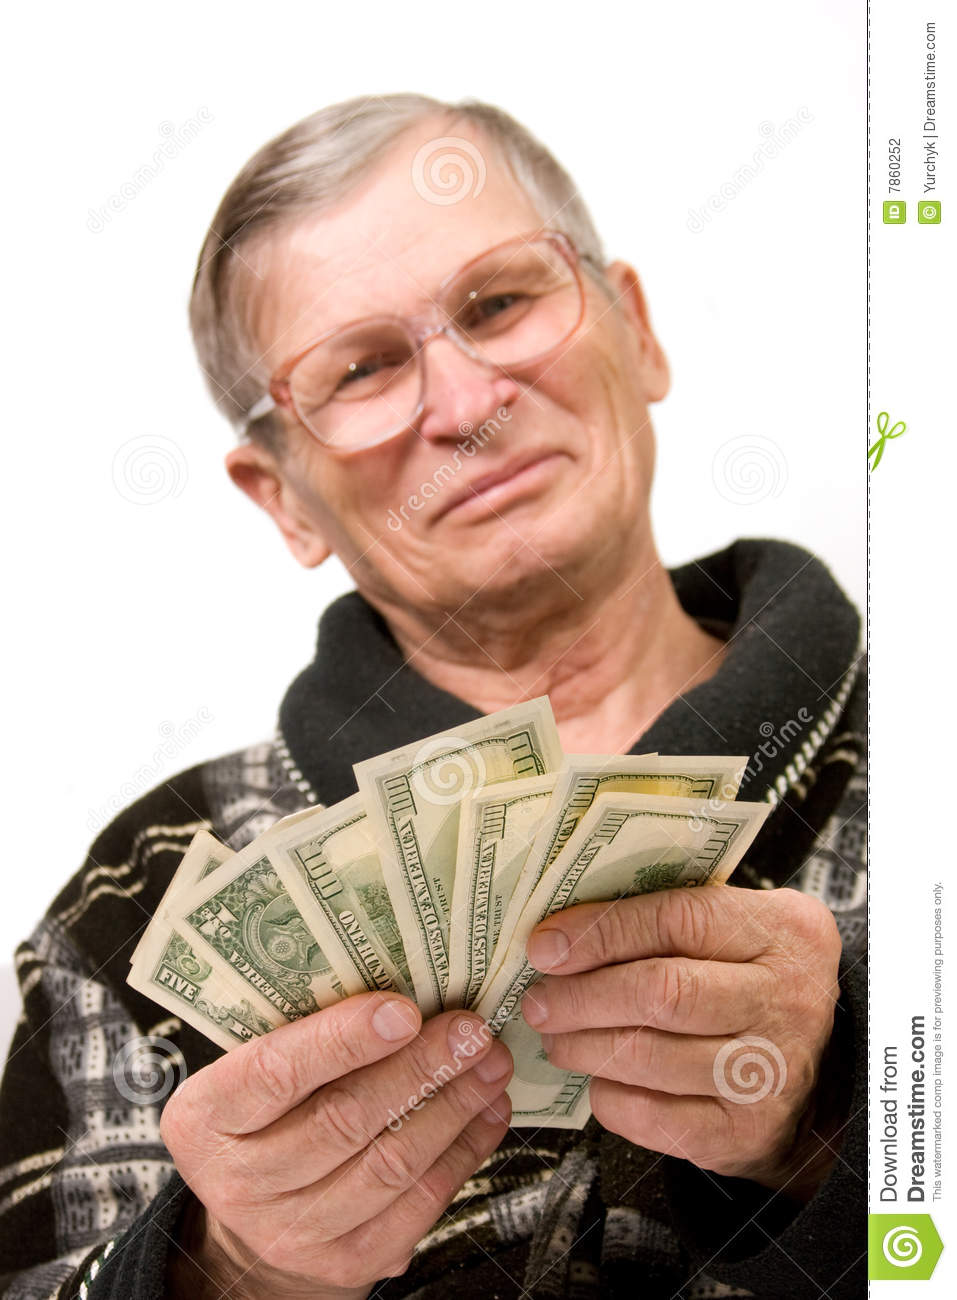 happy-old-man-holding-dollars-7860252.jp